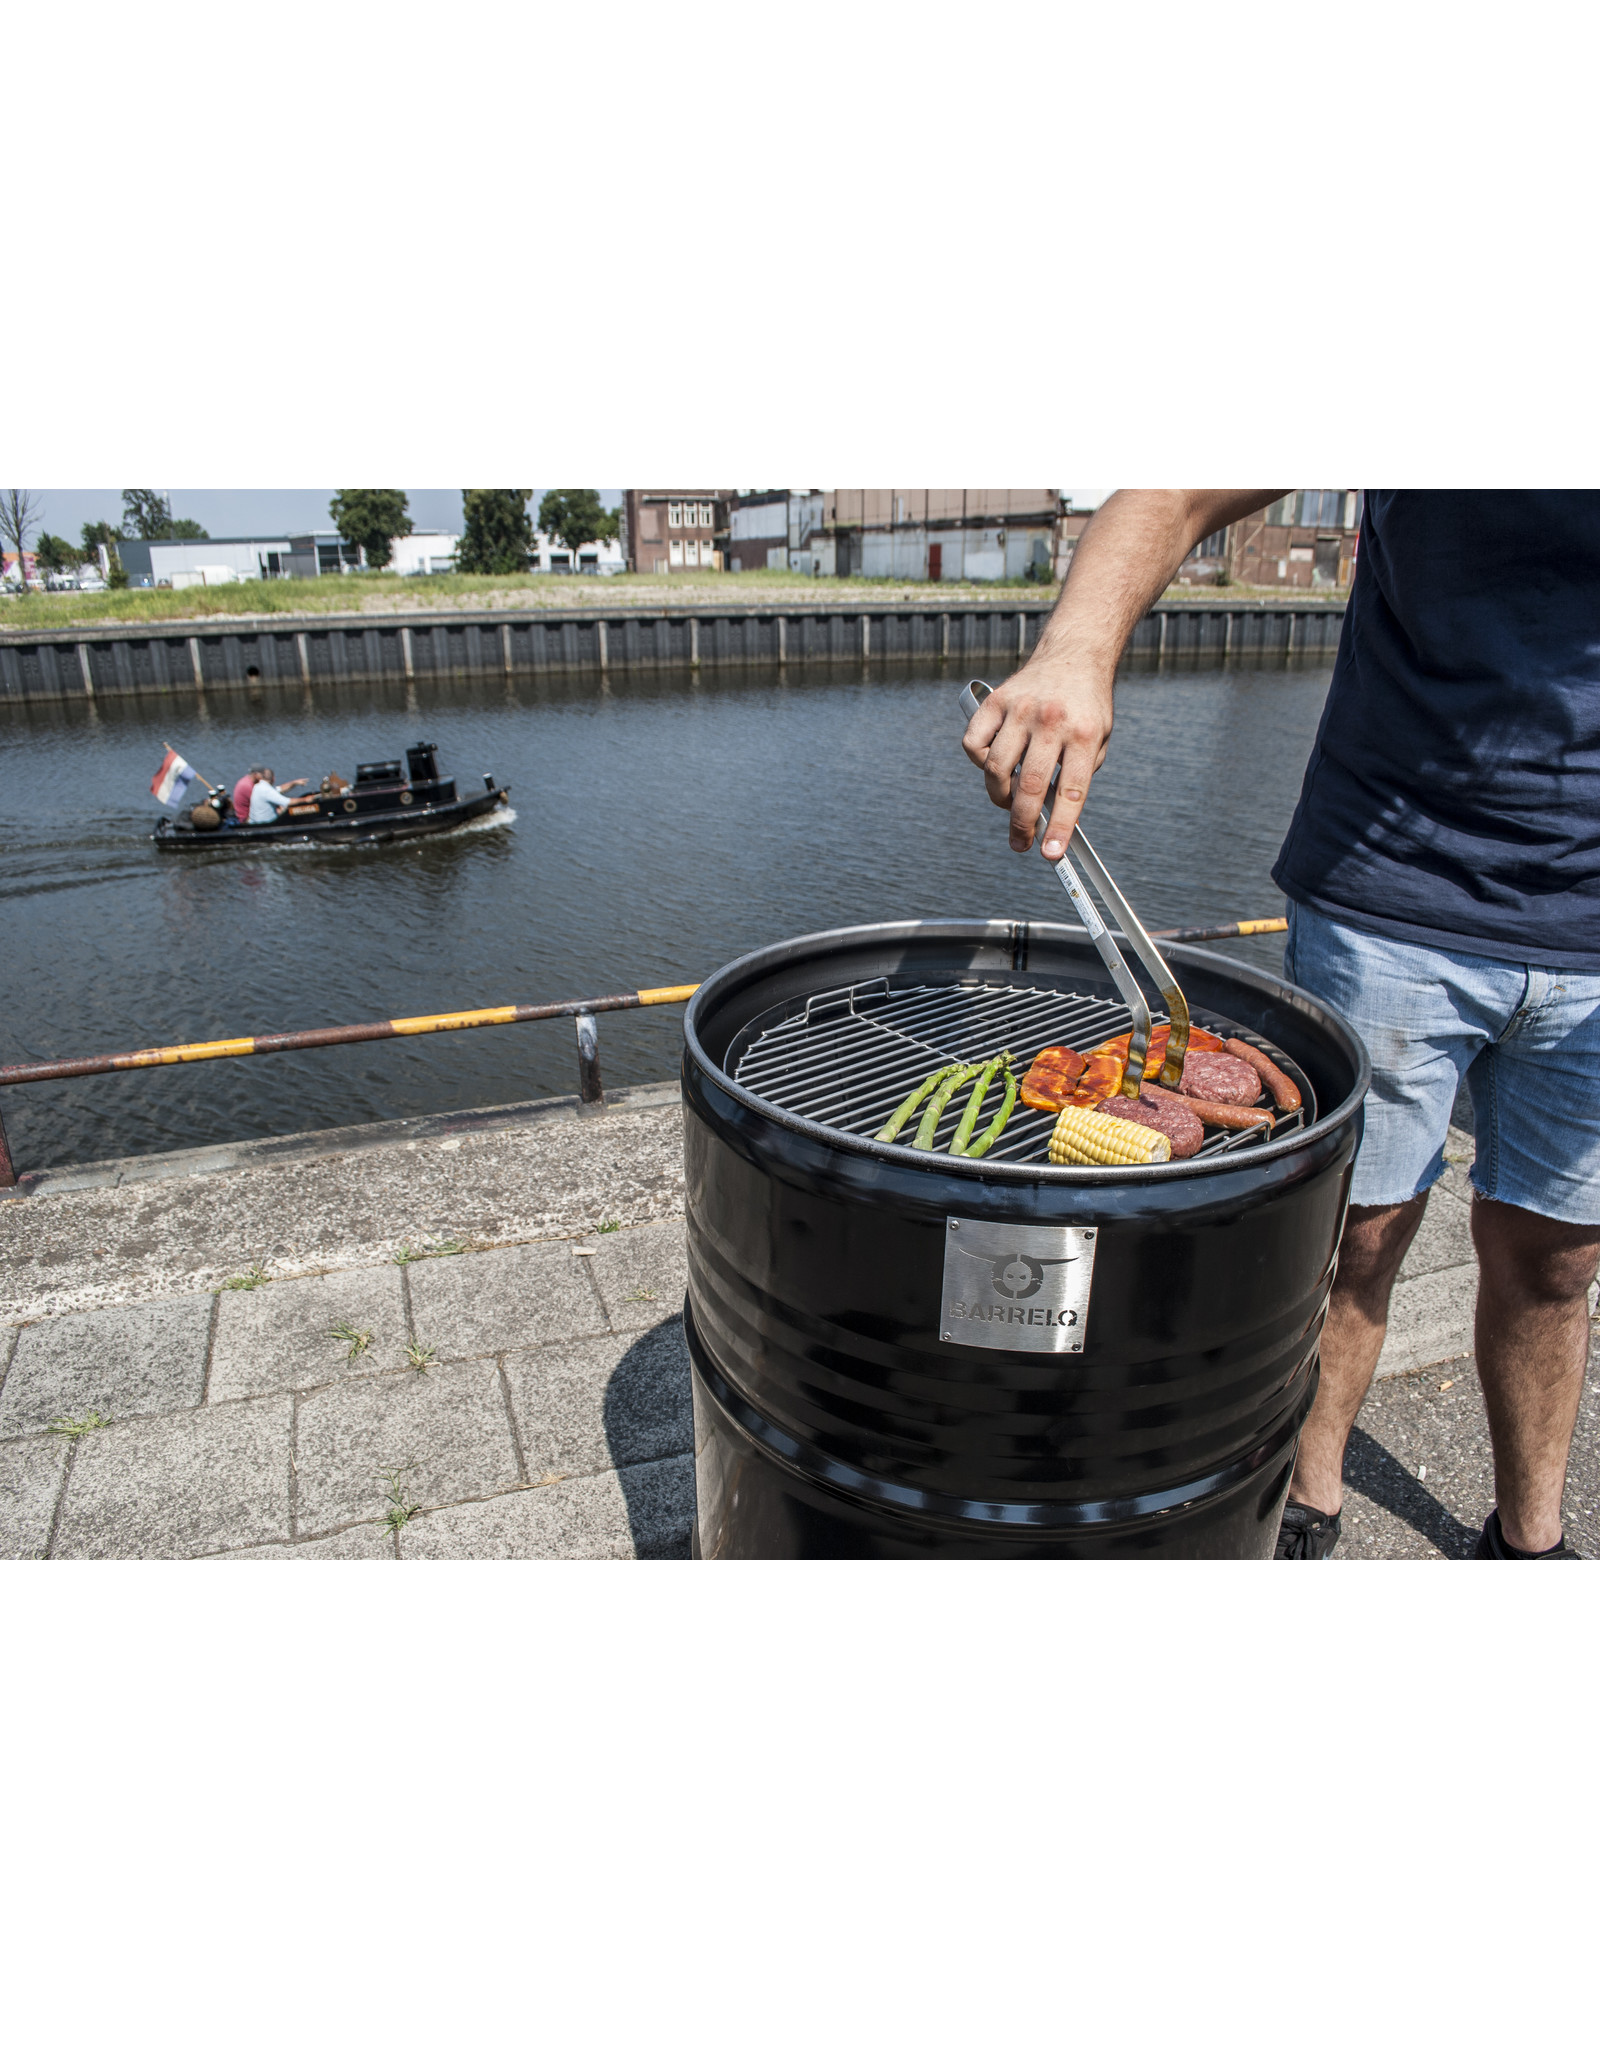 BarrelQ BarrelQ Big Notoriusblack 200 Liter Barbecue, firepit and table in one